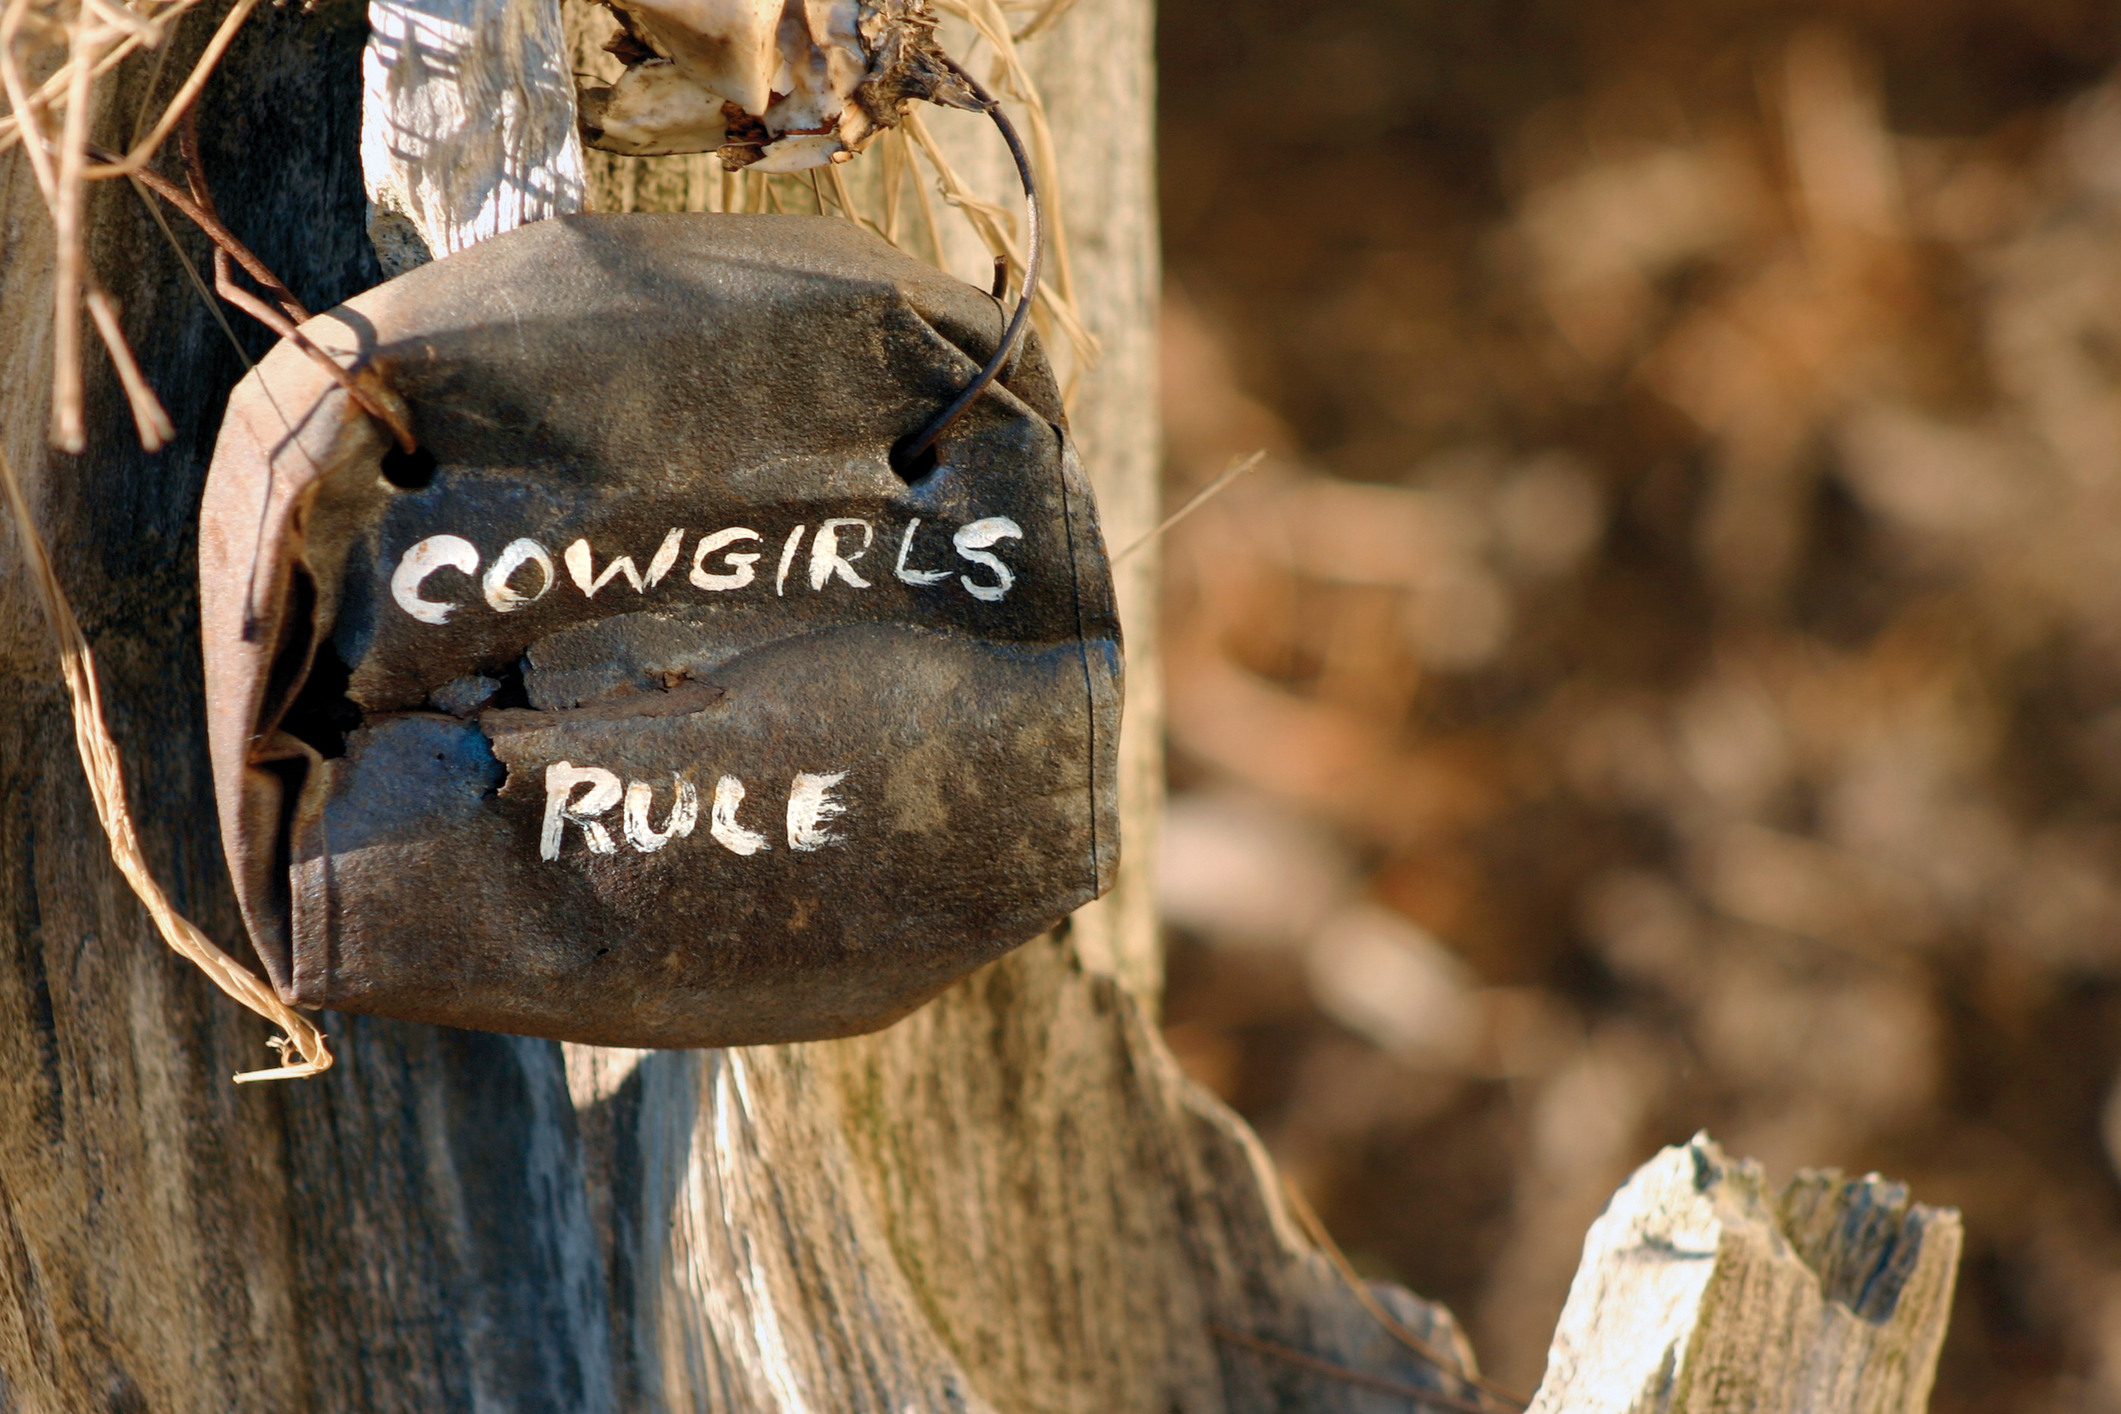 cowgirls-rule-dreamstime-m-2888137.jpg